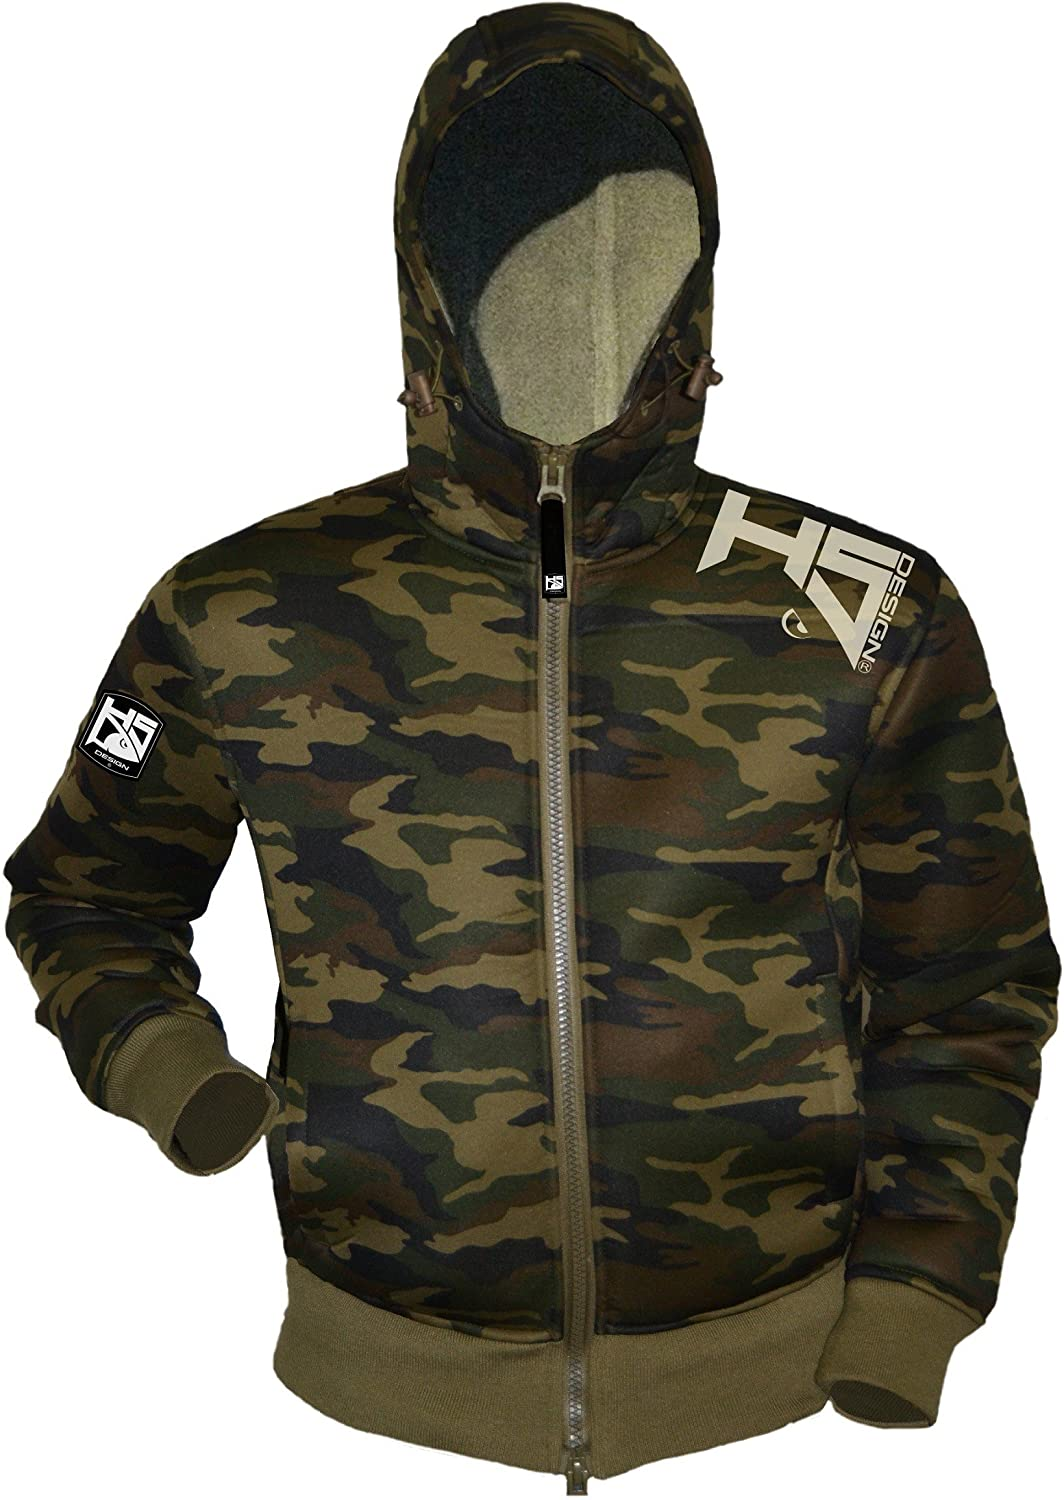 HOTSPOT DESIGN Fishing Neoprene Thermic Jacket, camouflage, reliable weather predection even in bitter cold